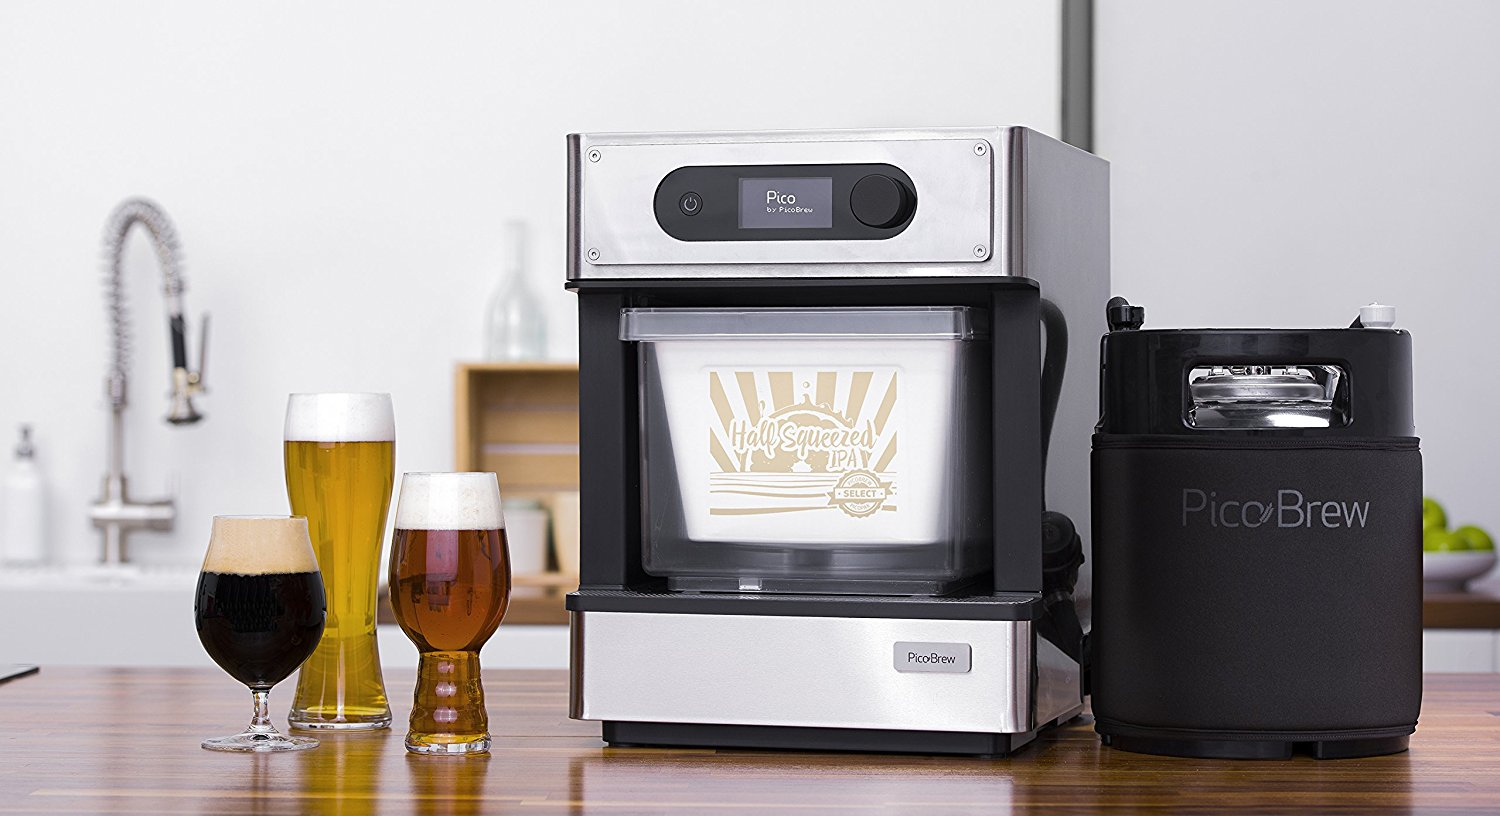 Craft Beer Brewing Appliance - OMG Gimme!